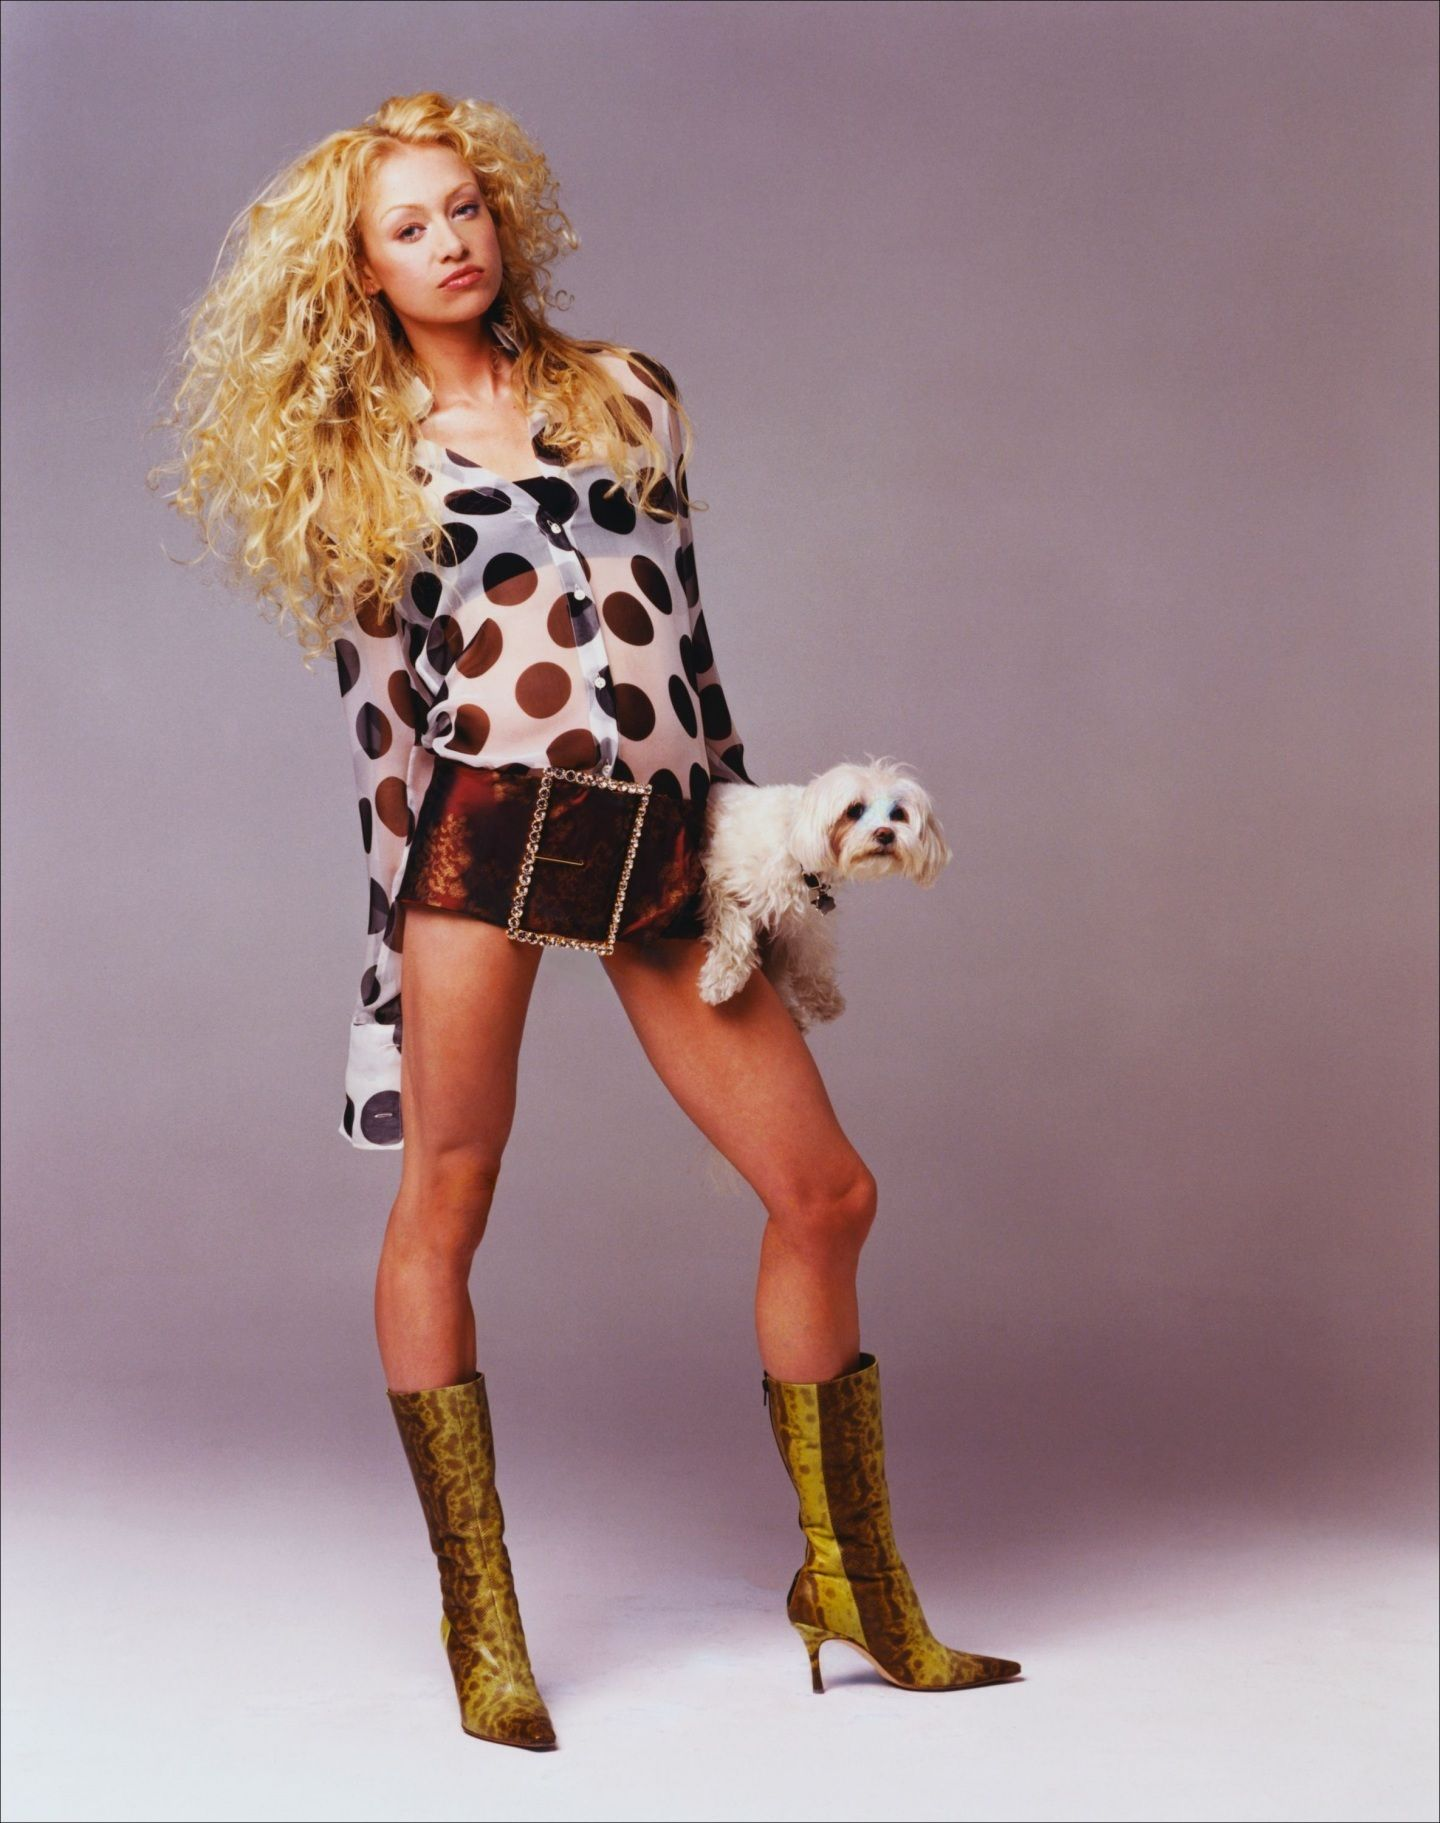 Ally Pin Up Portia De Rossi Polka Dot Ally Mcbeal With Dogs